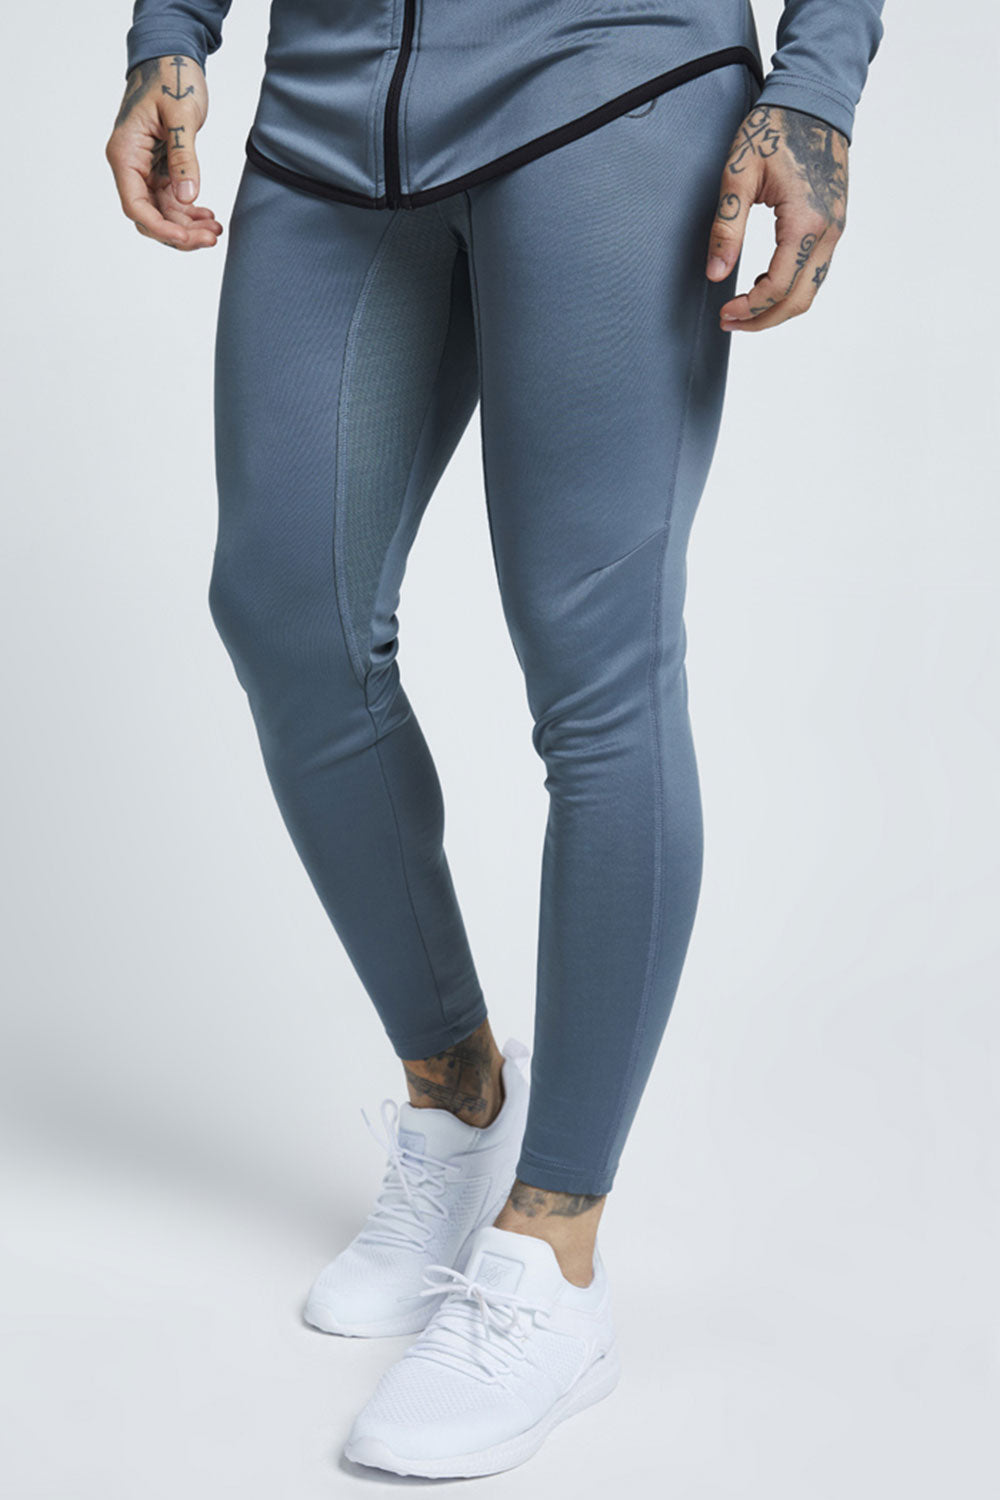 SikSilk Athlete Track Pants – Aqua Grey